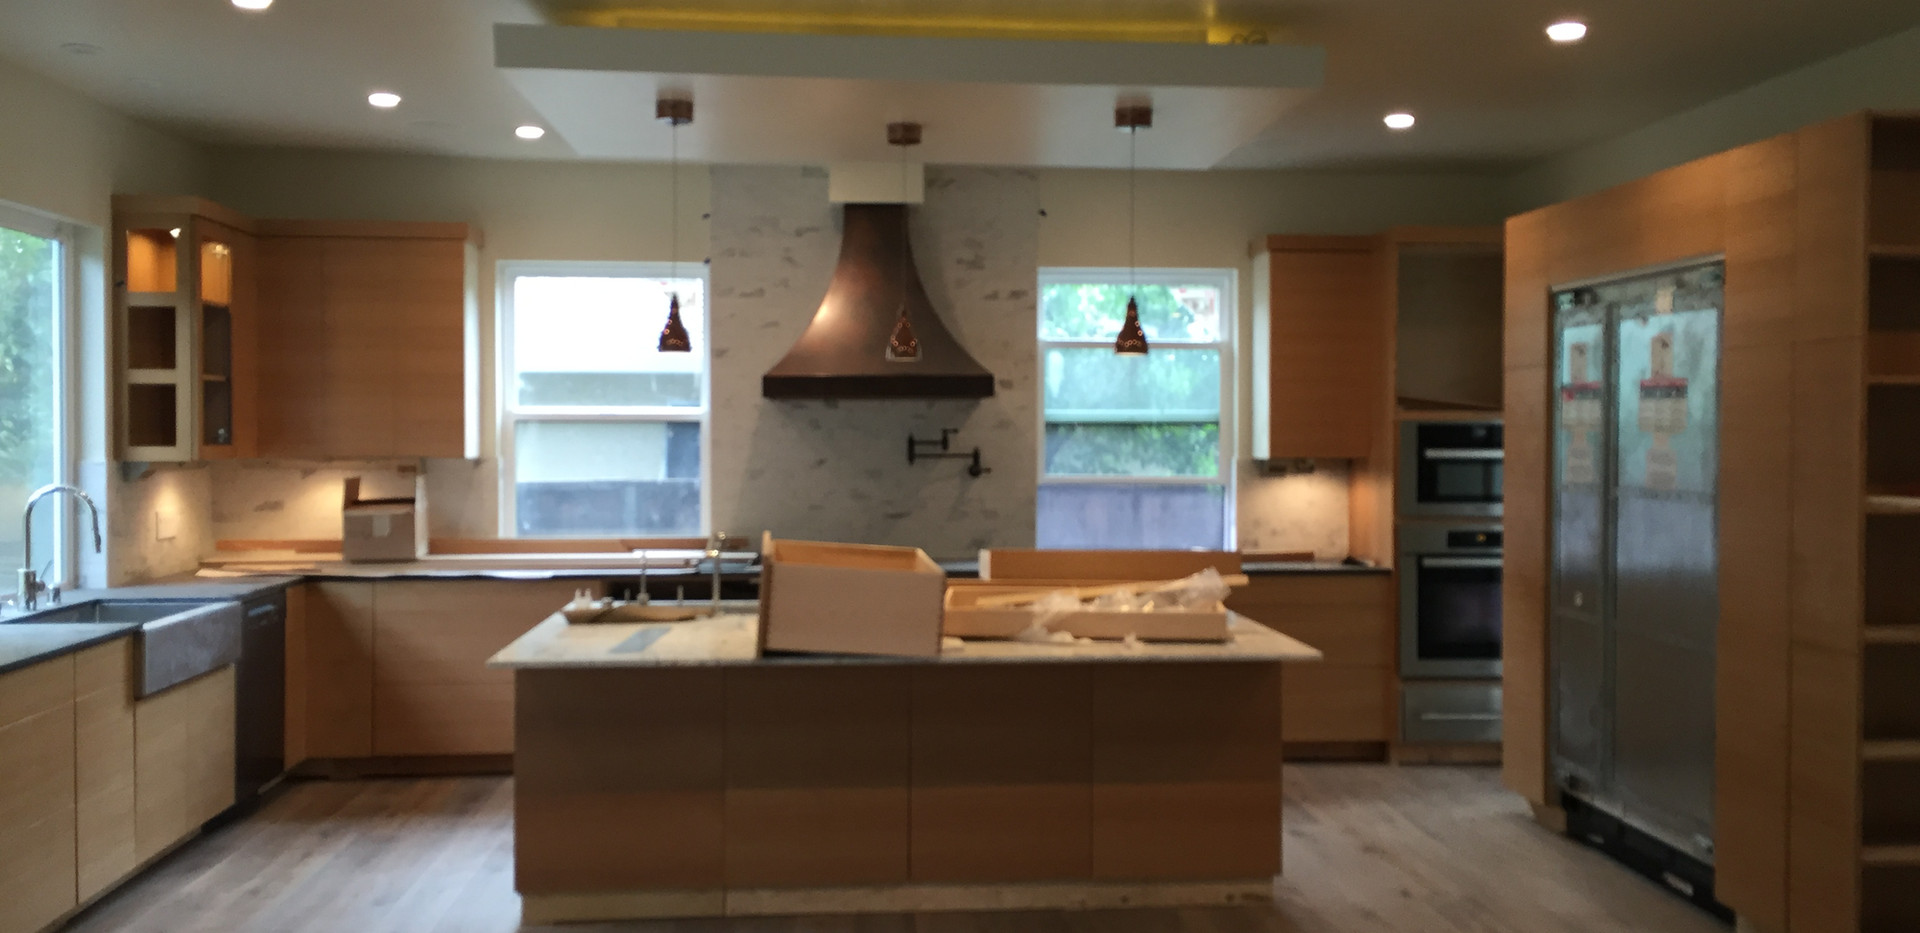 kitchen and house re-wire